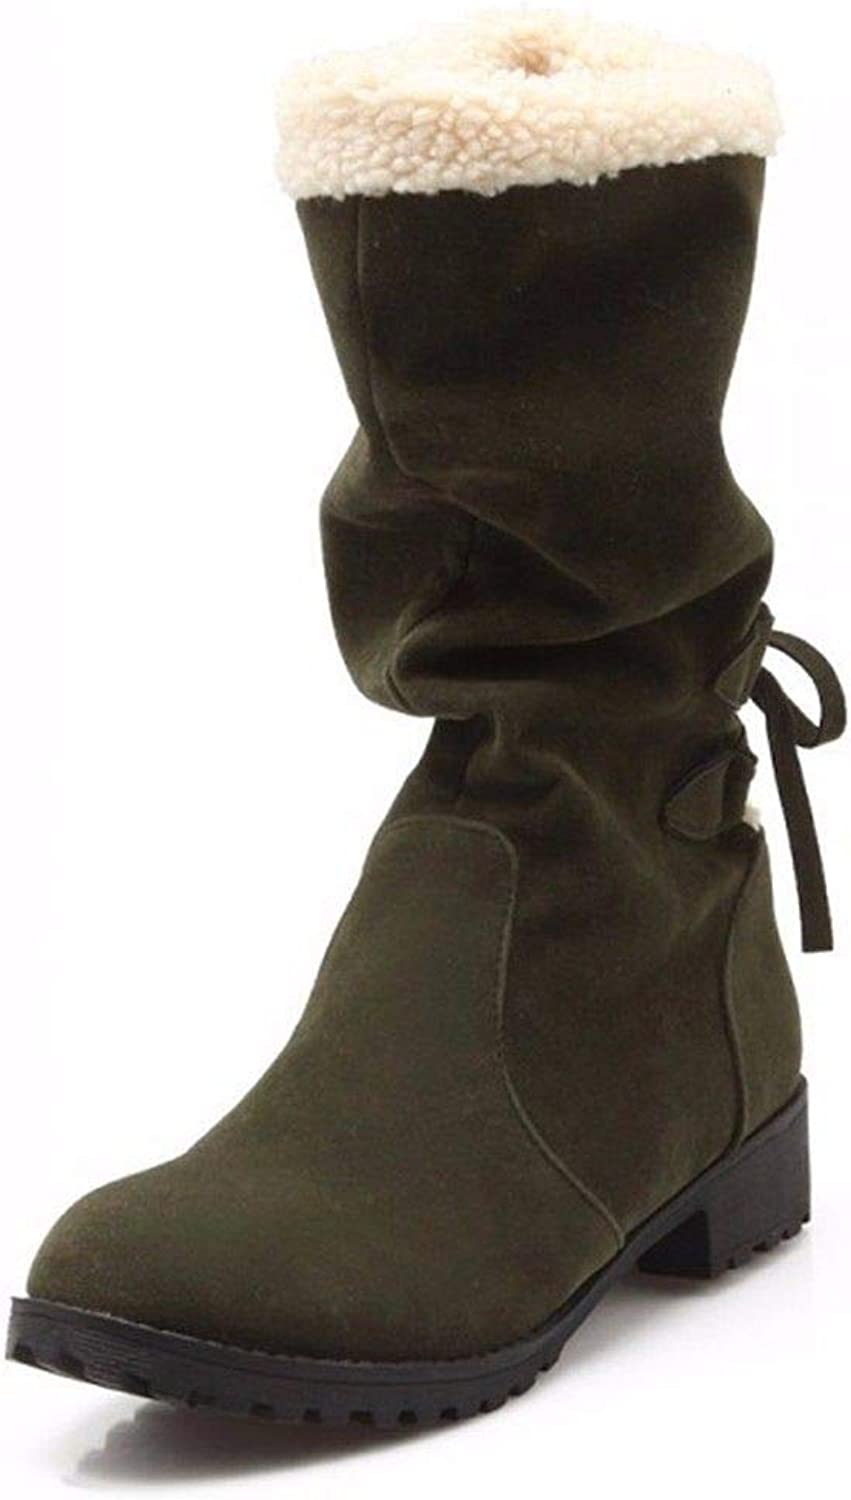 The Winter After Ms. TIE Cotton Boots and Cashmere Thermal Size Student Boots